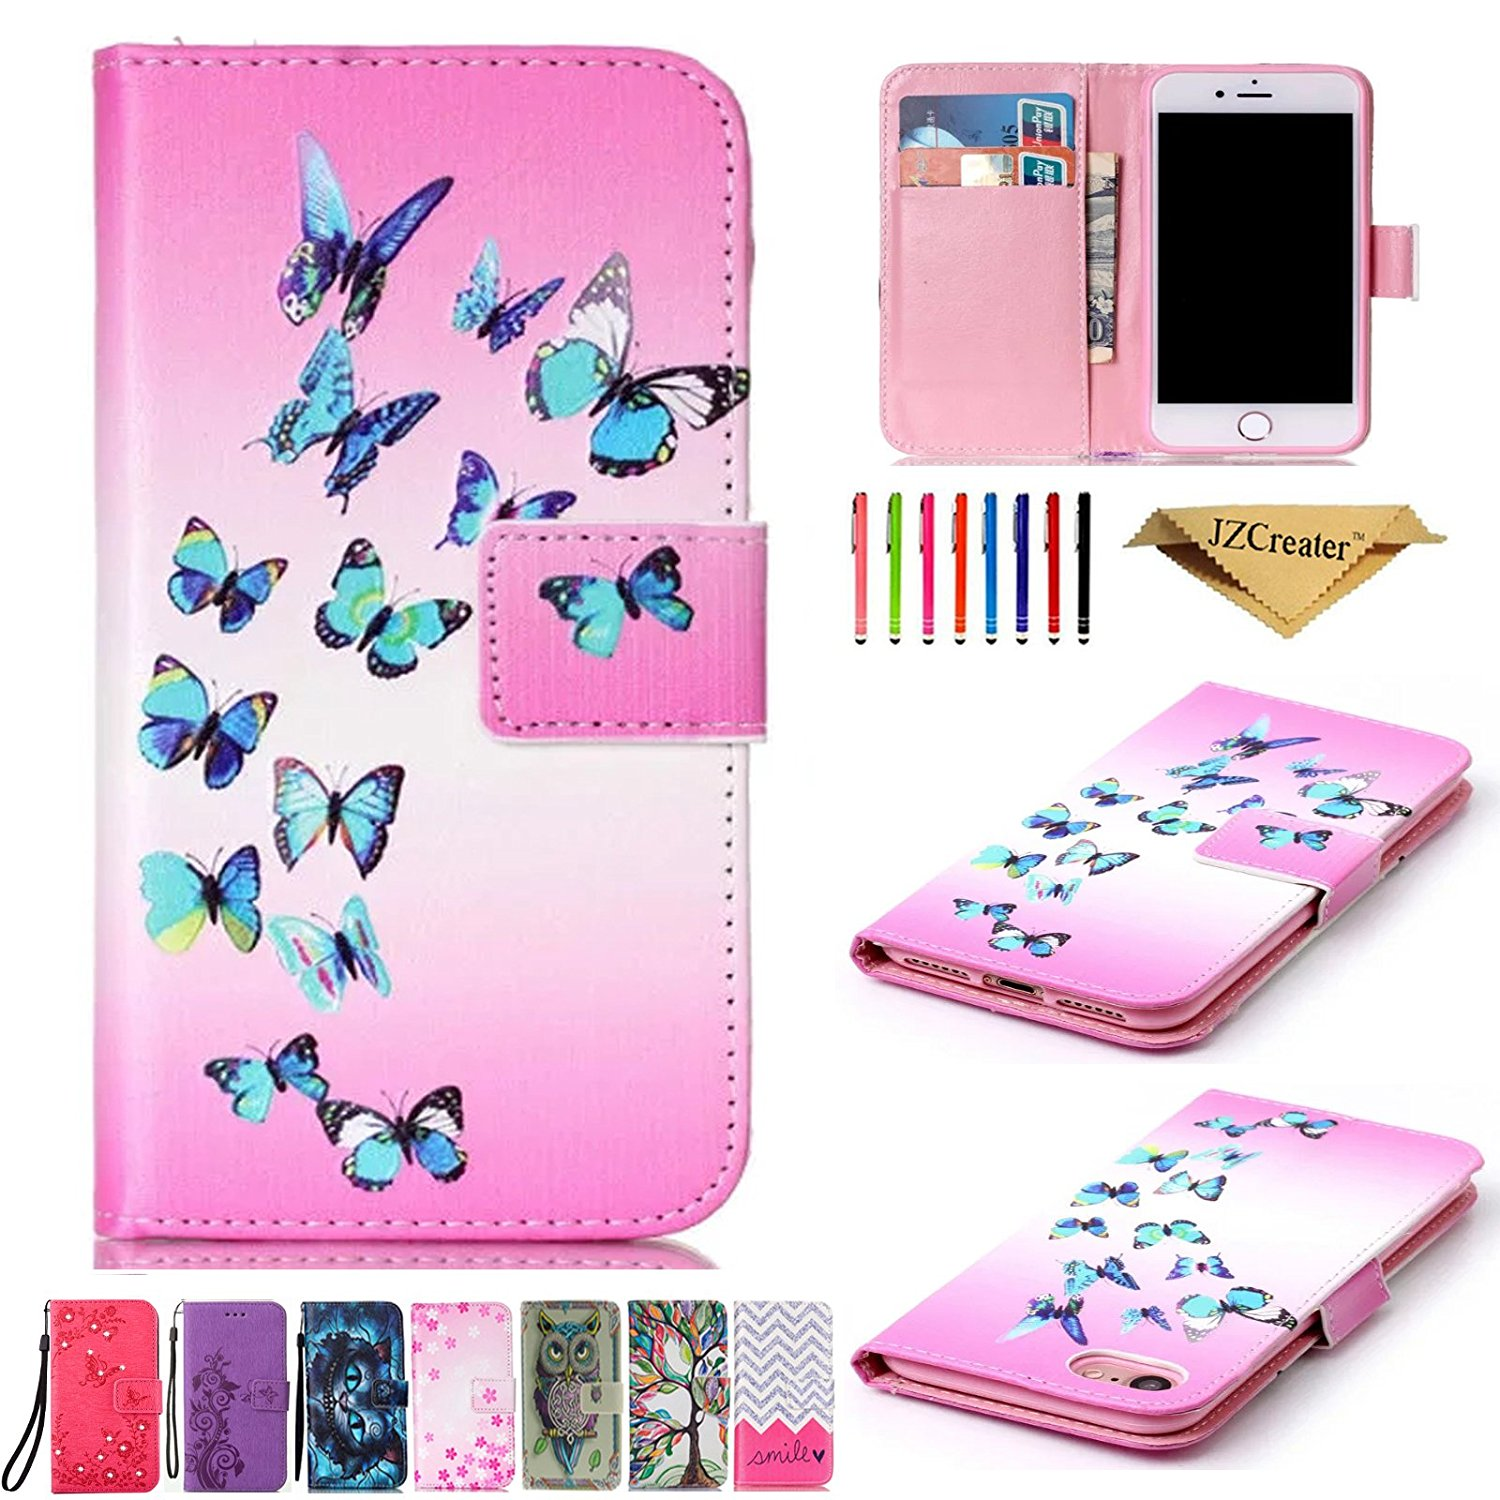 iPhone 7 Plus Case, iPhone 7 Pro PU Leather Case, JZCreater 3D Emboss Butterfly Premium PU Leather Flip Wallet Case Cover with Kickstand and Wrist Strap for iPhone 7 Plus/Pro 5.5inch, #Butterfly